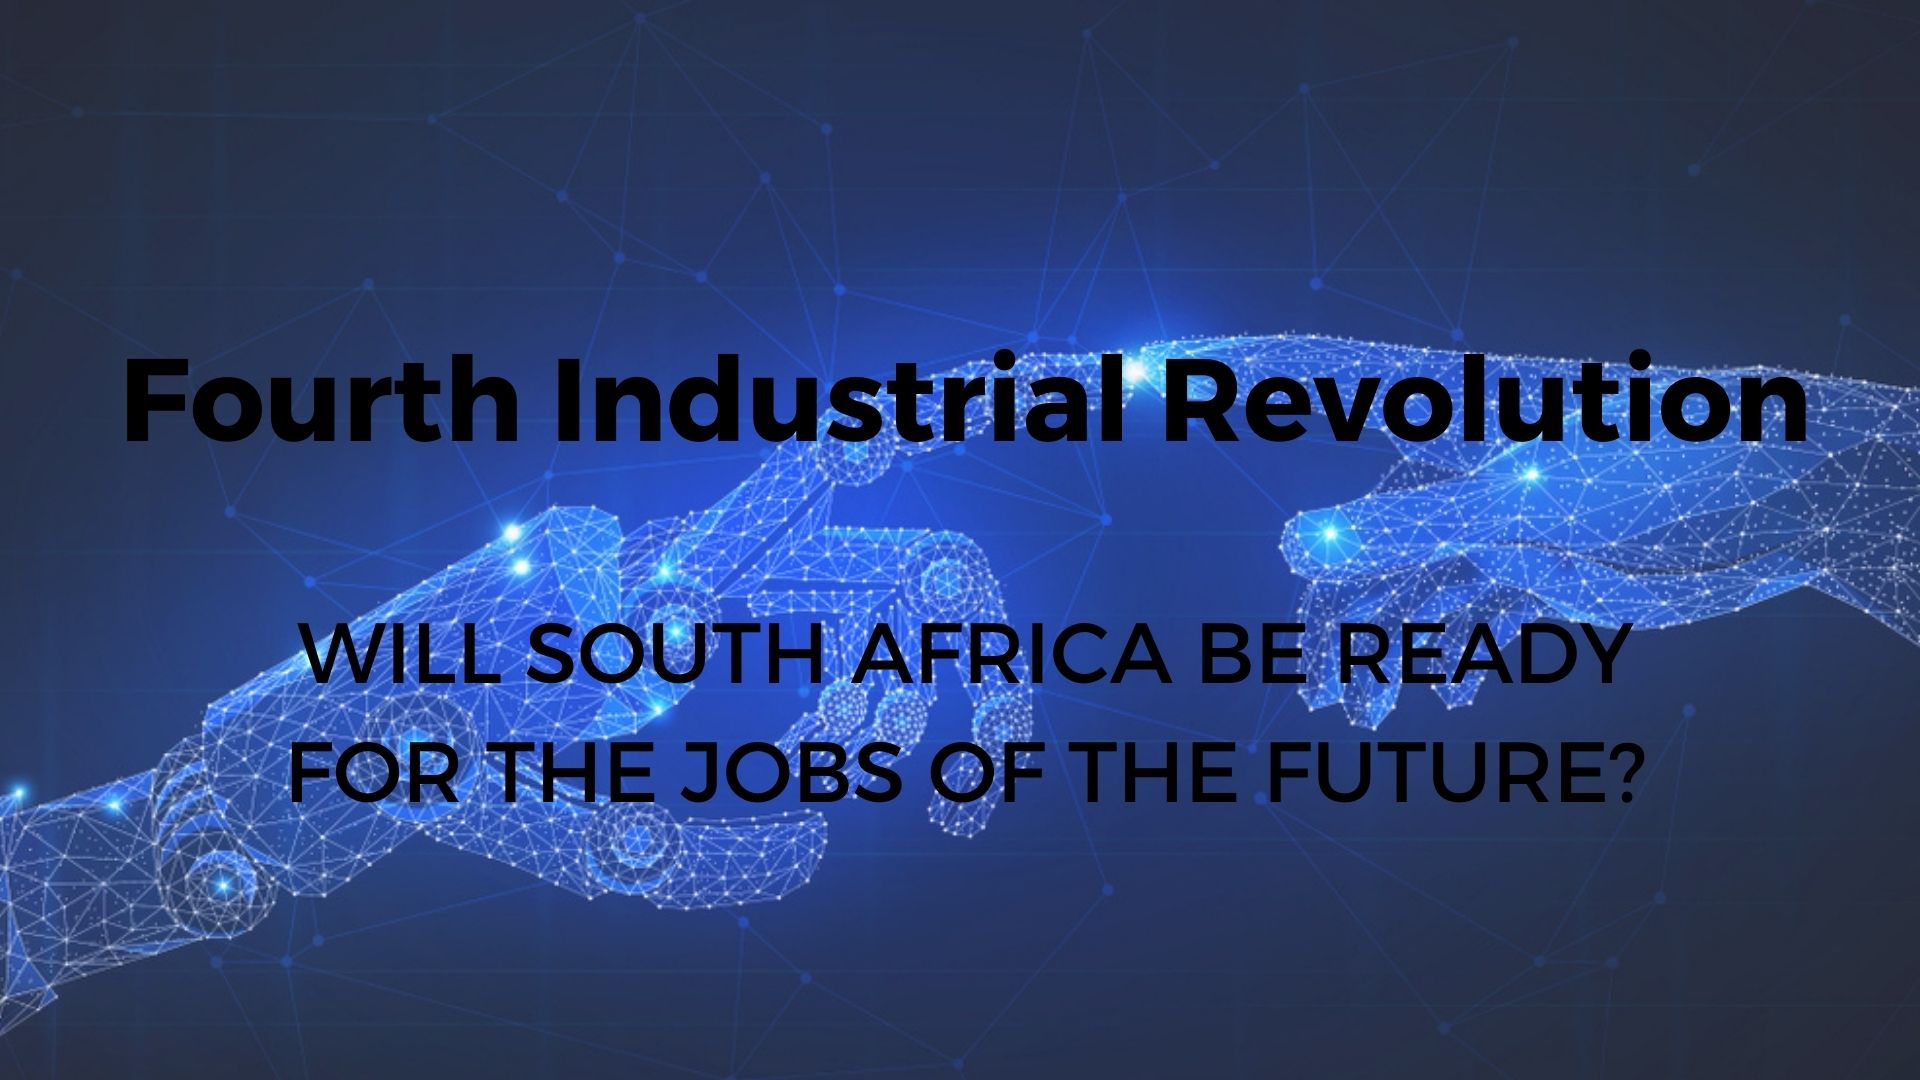 South Africa still lags far behind the Fourth Industrial Revolution